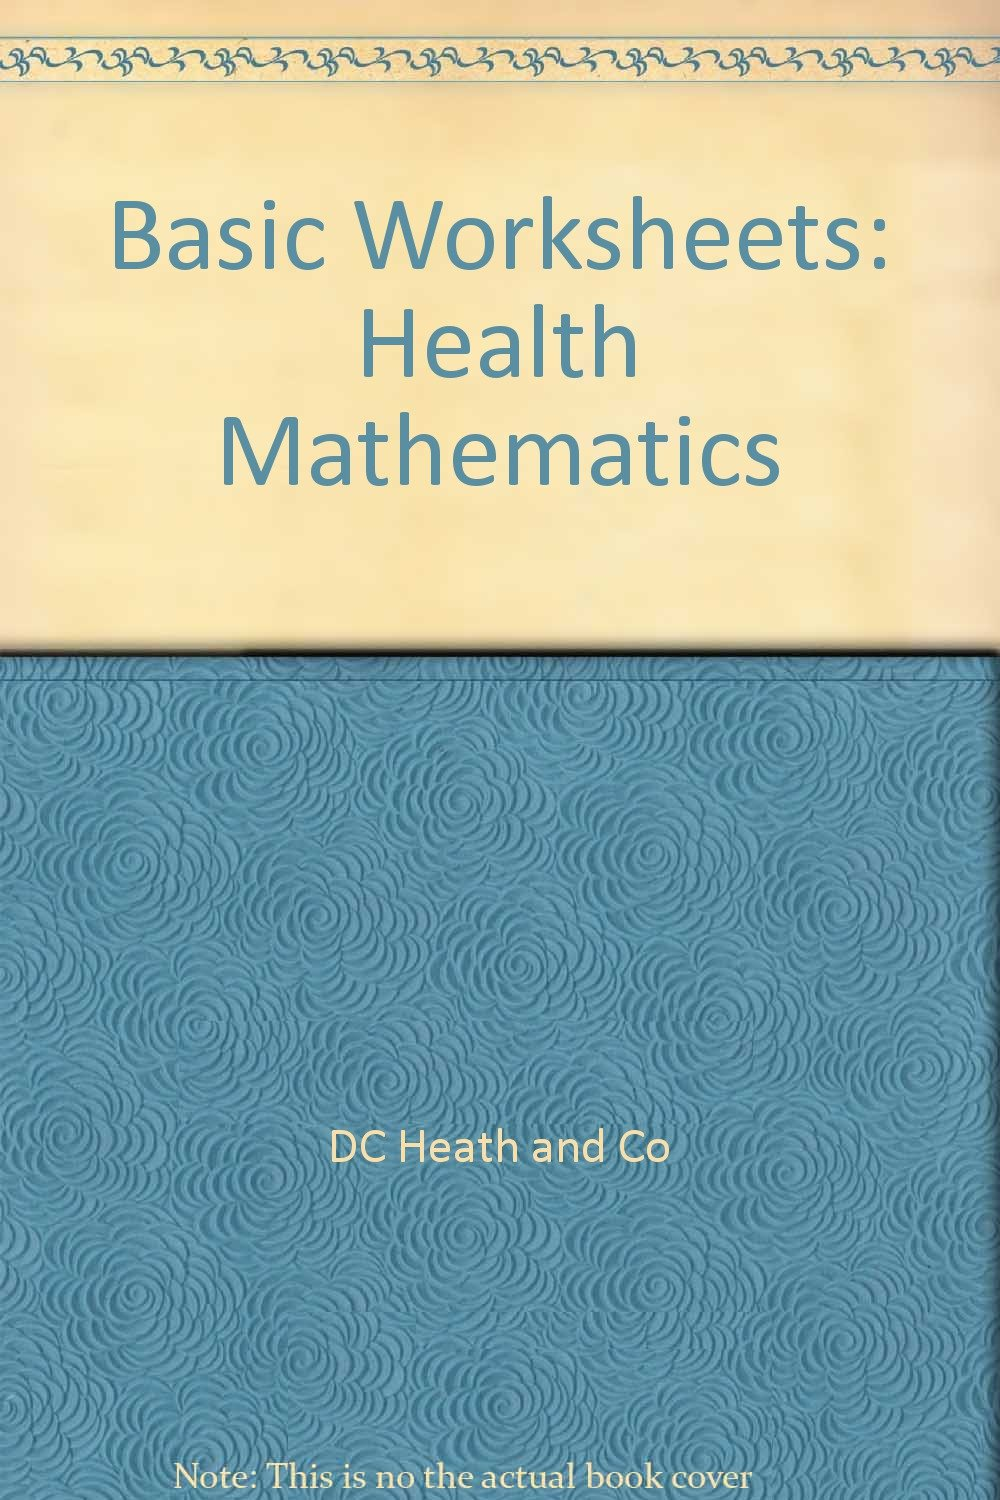 Worksheets D.c Heath And Company Worksheets basic worksheets health mathematics dc heath and co 9780669078350 amazon com books